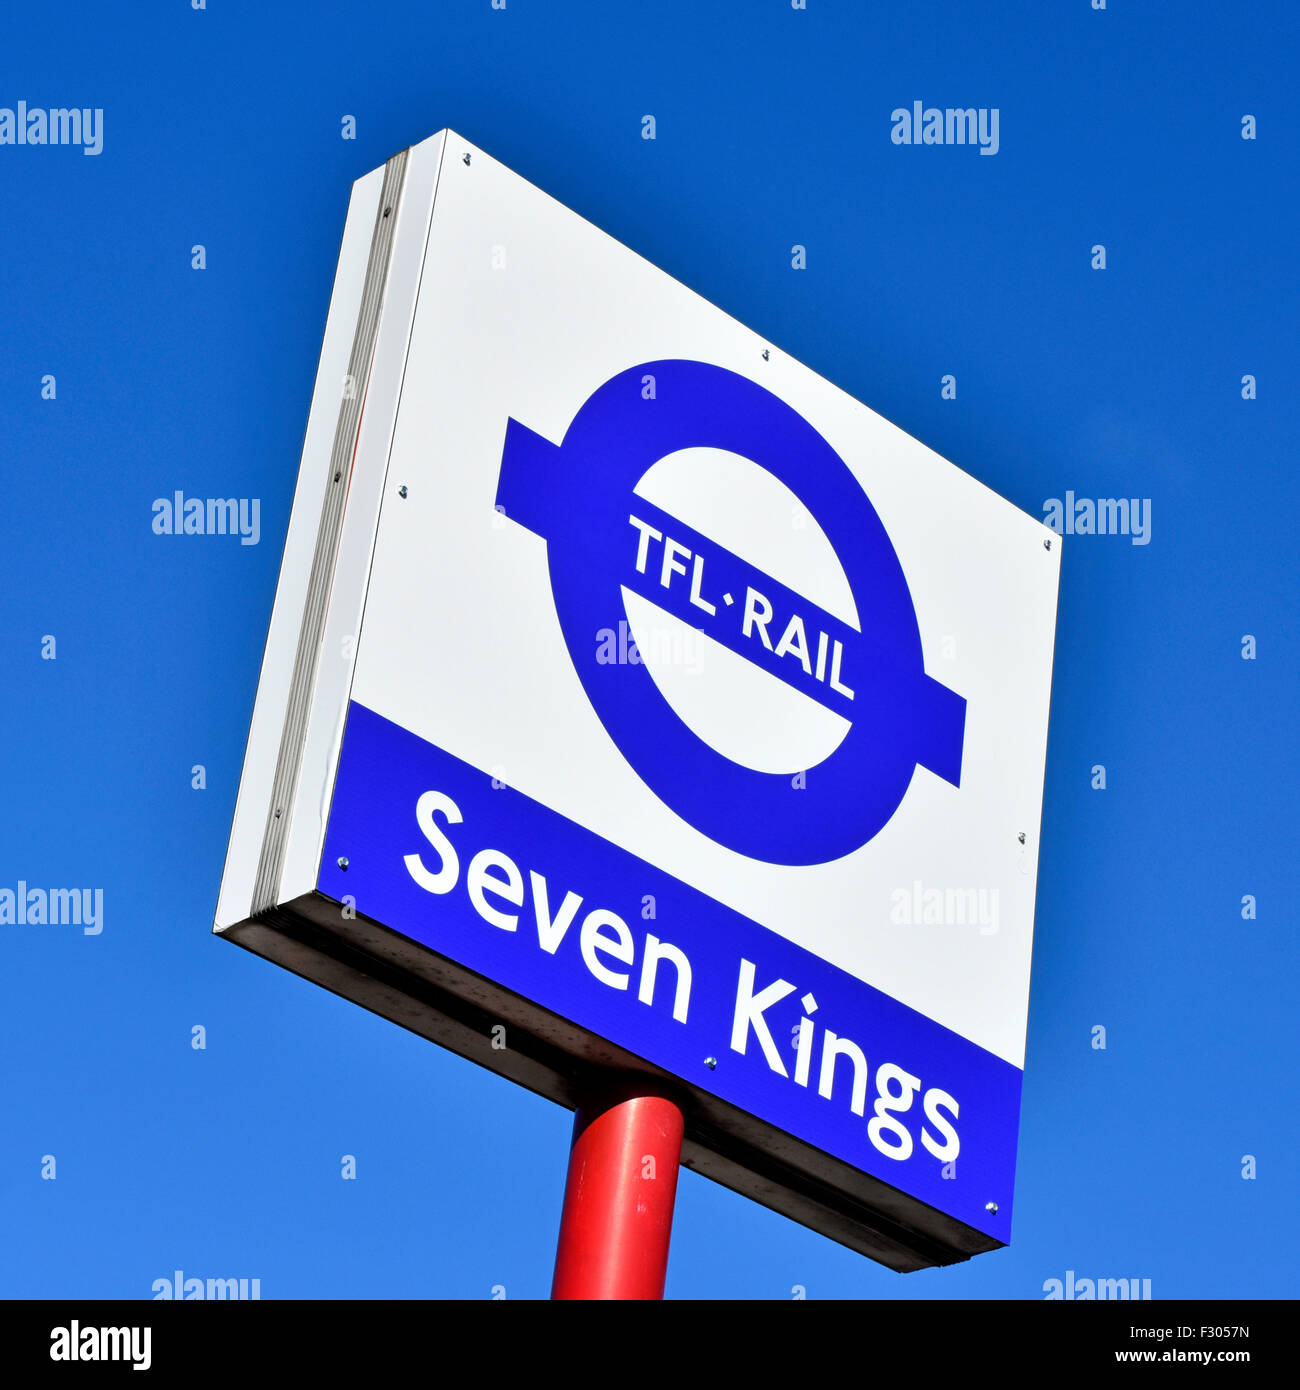 Severn Kings East London suburban station & new TFL signs take over Metro commuter trains to Liverpool Street - Stock Image